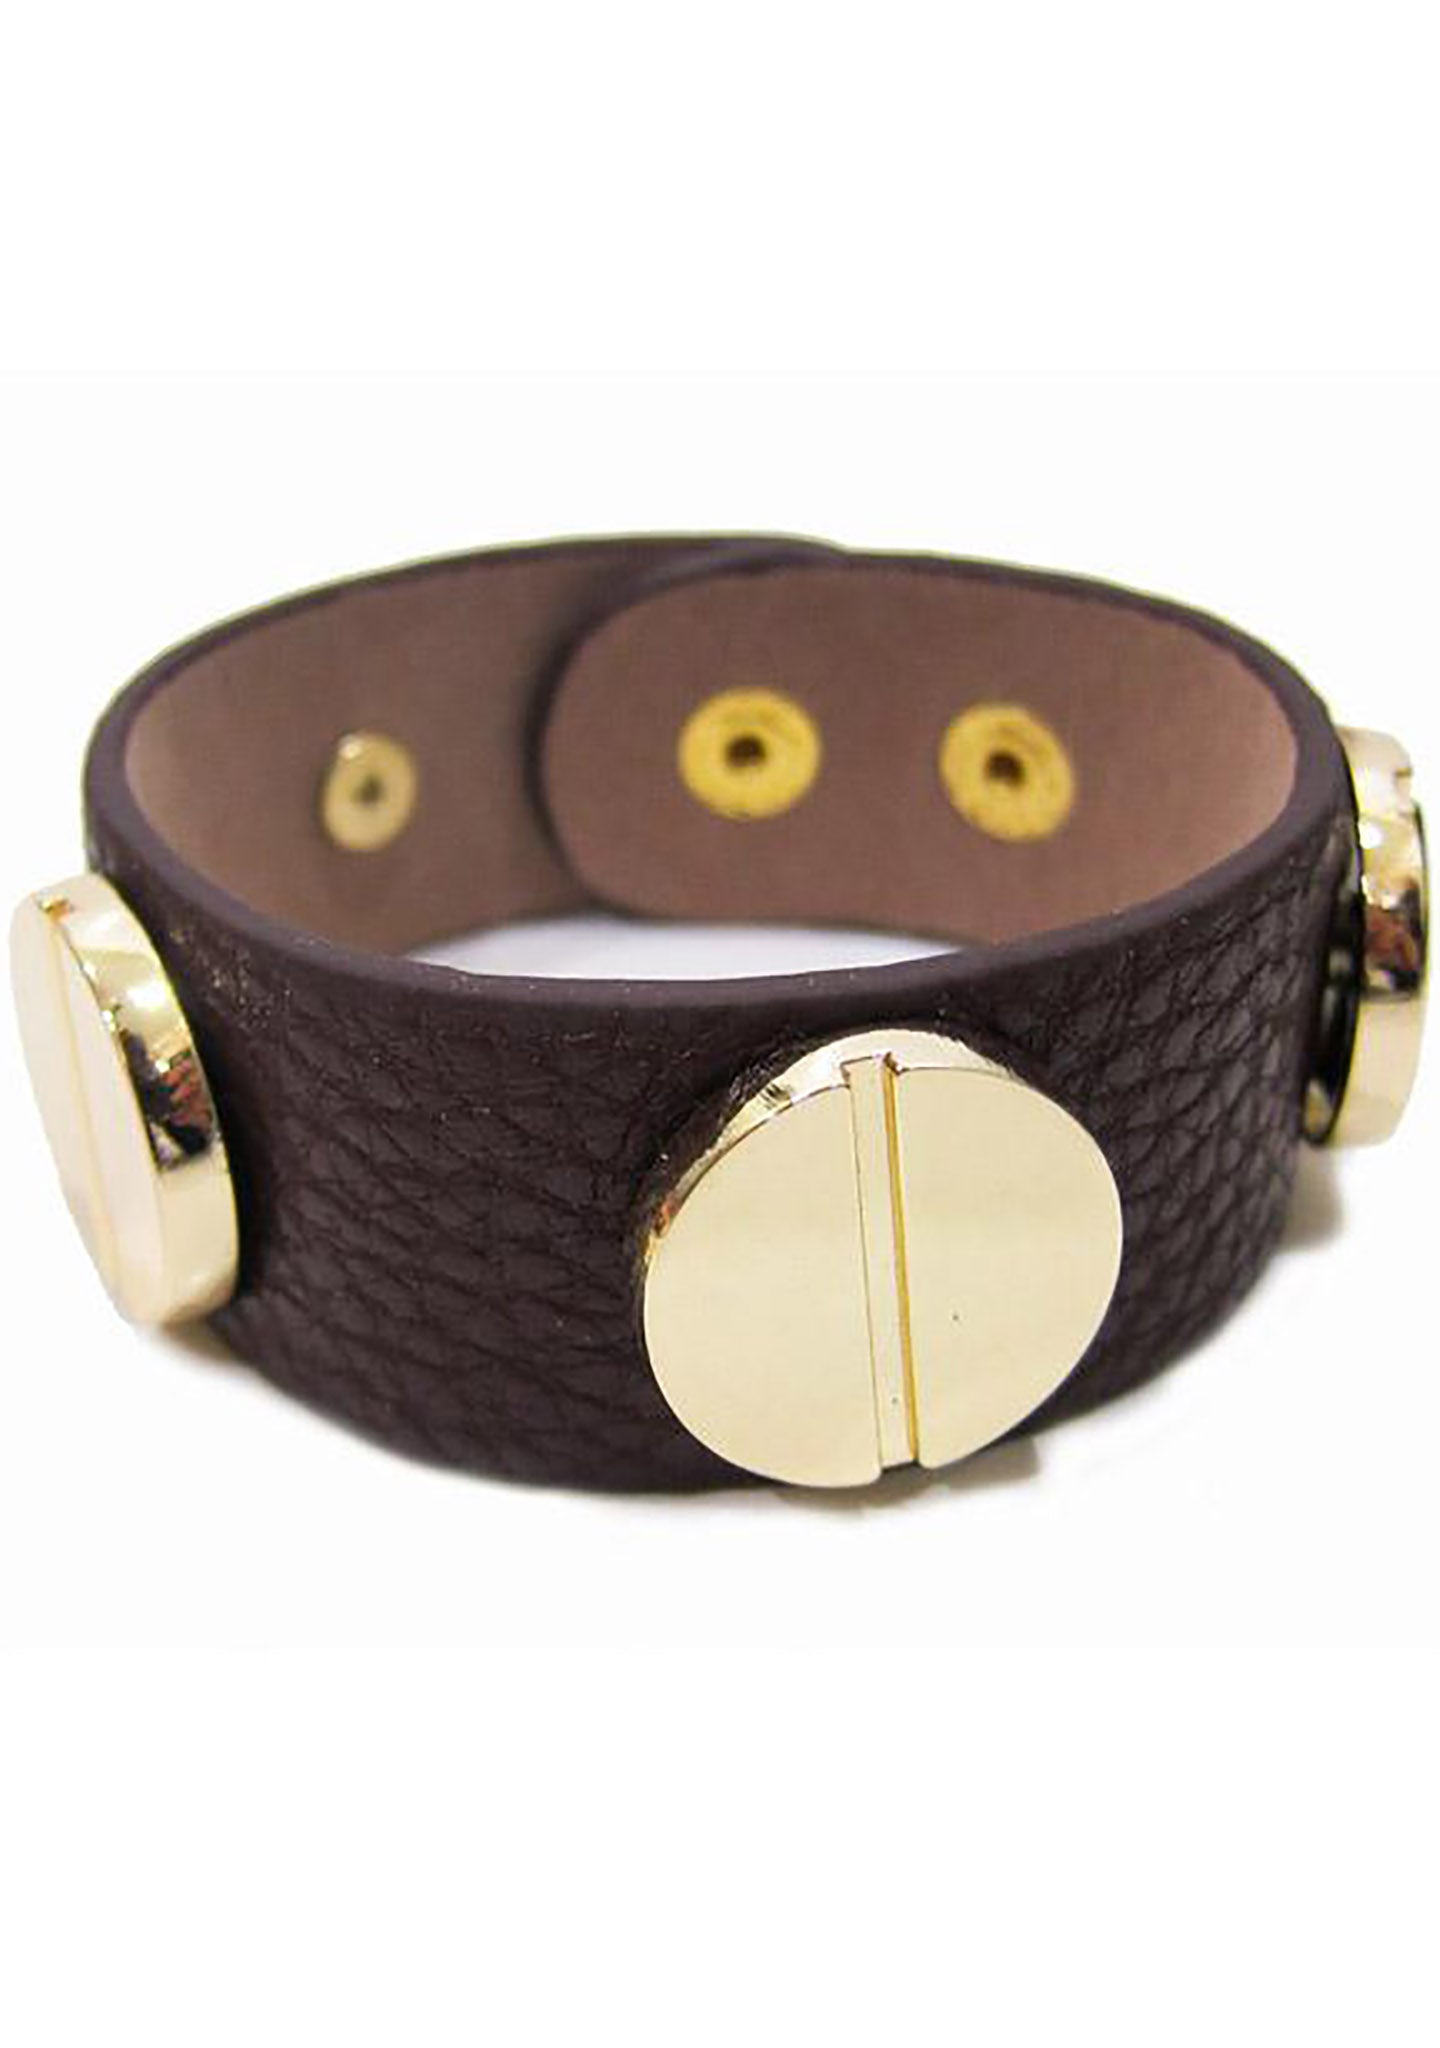 FASHô Large Screw Bracelet in Chocolate/Gold